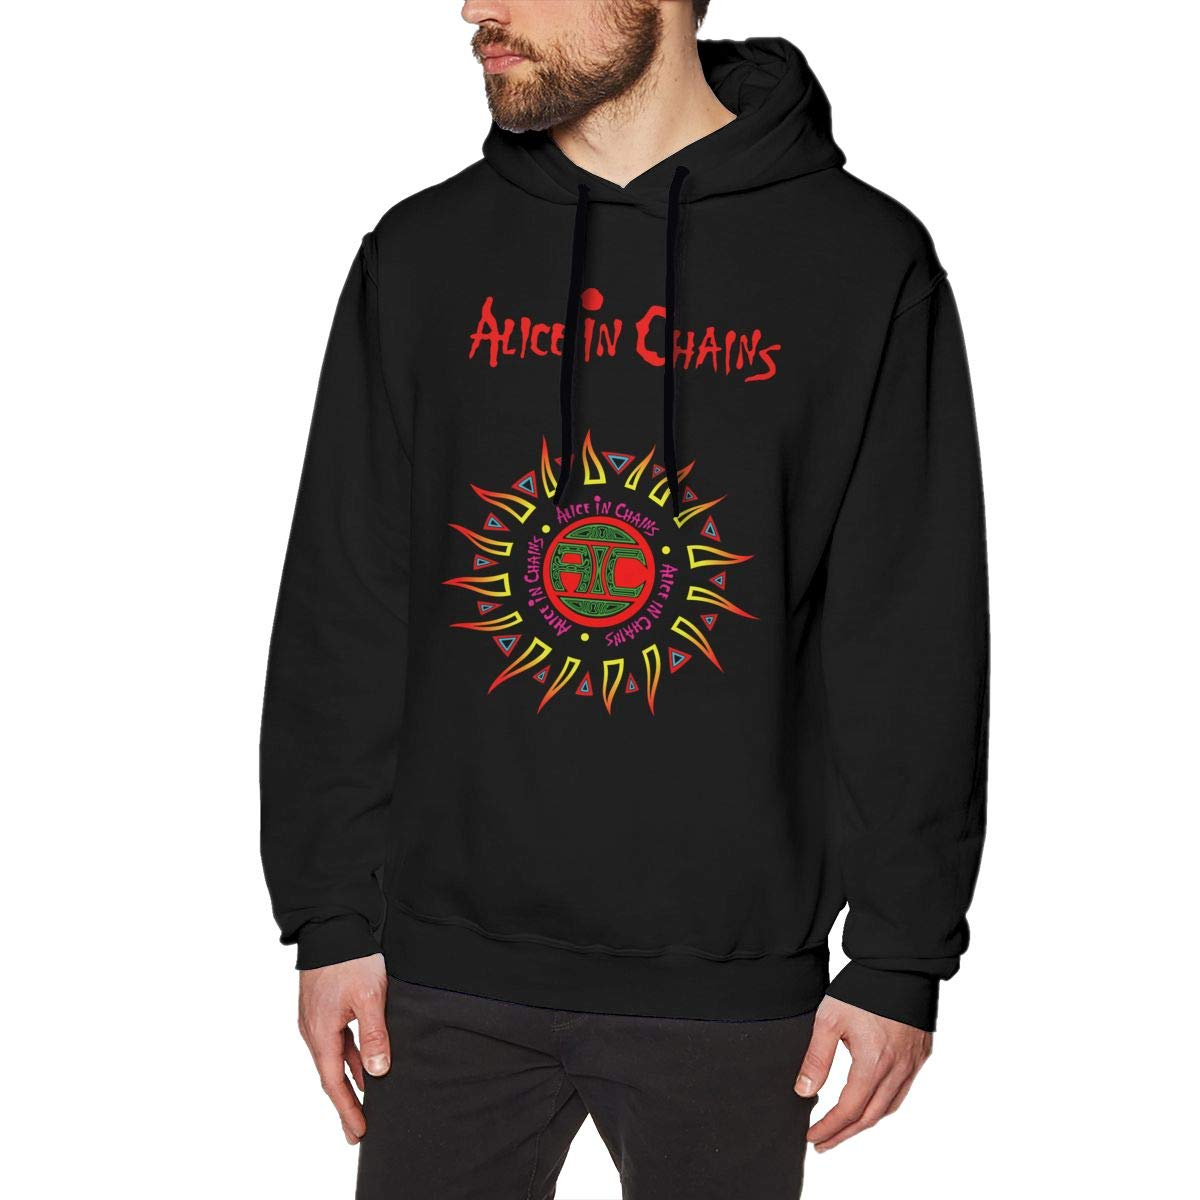 Alice in Chains Men's Hoodies Sweater Fashion Long Sleeve Top Hooded Sweatshirts